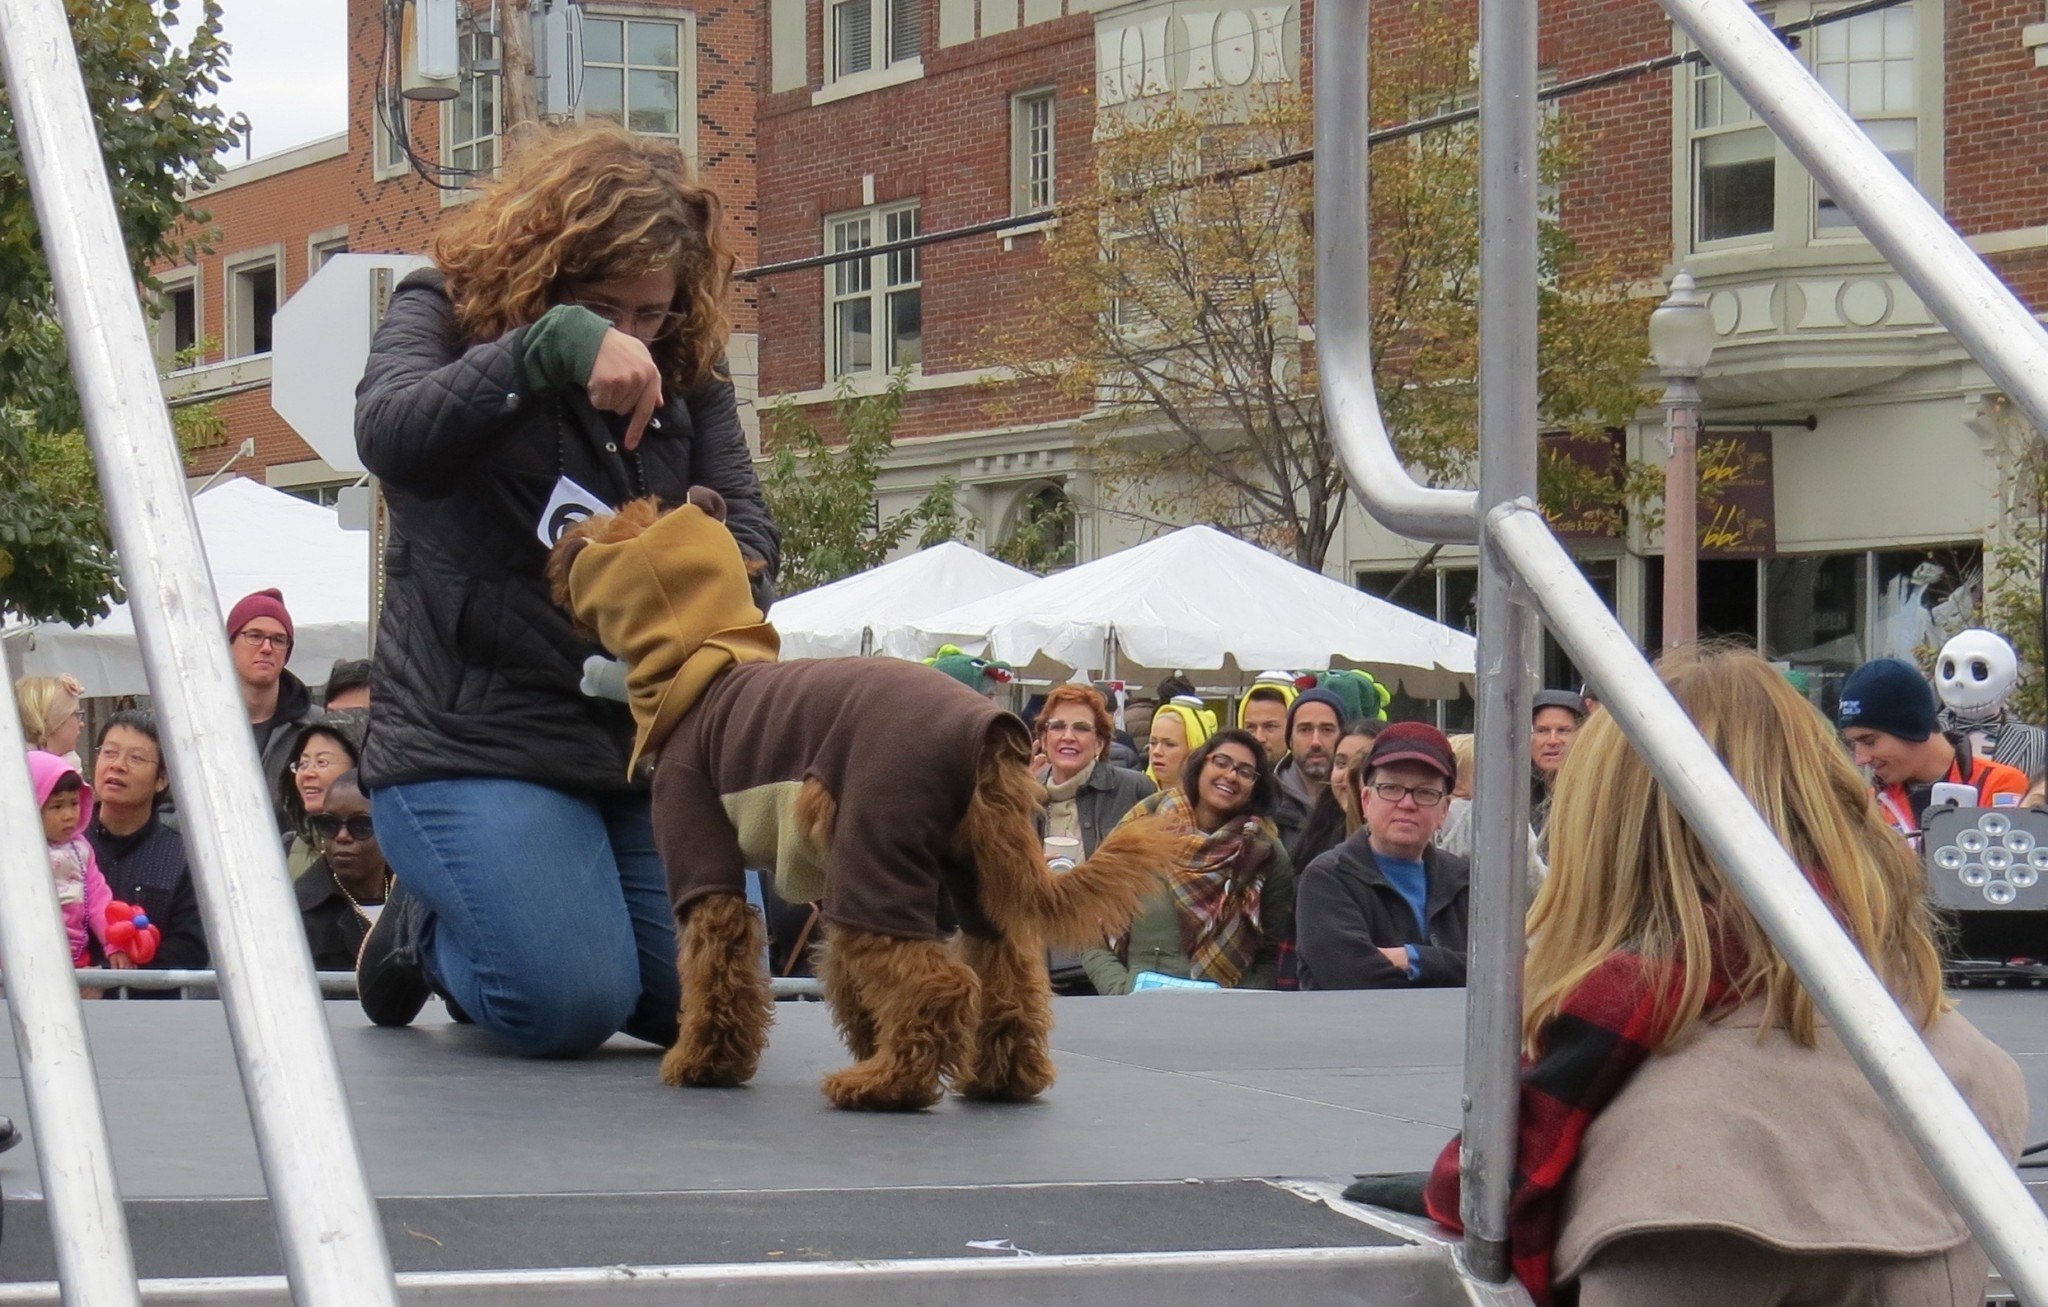 Nicki's Central West End Guide CWE Pets Events, Sightings For Children  Trish Bush Tommy Holloran Central West End Canine Costume Contest